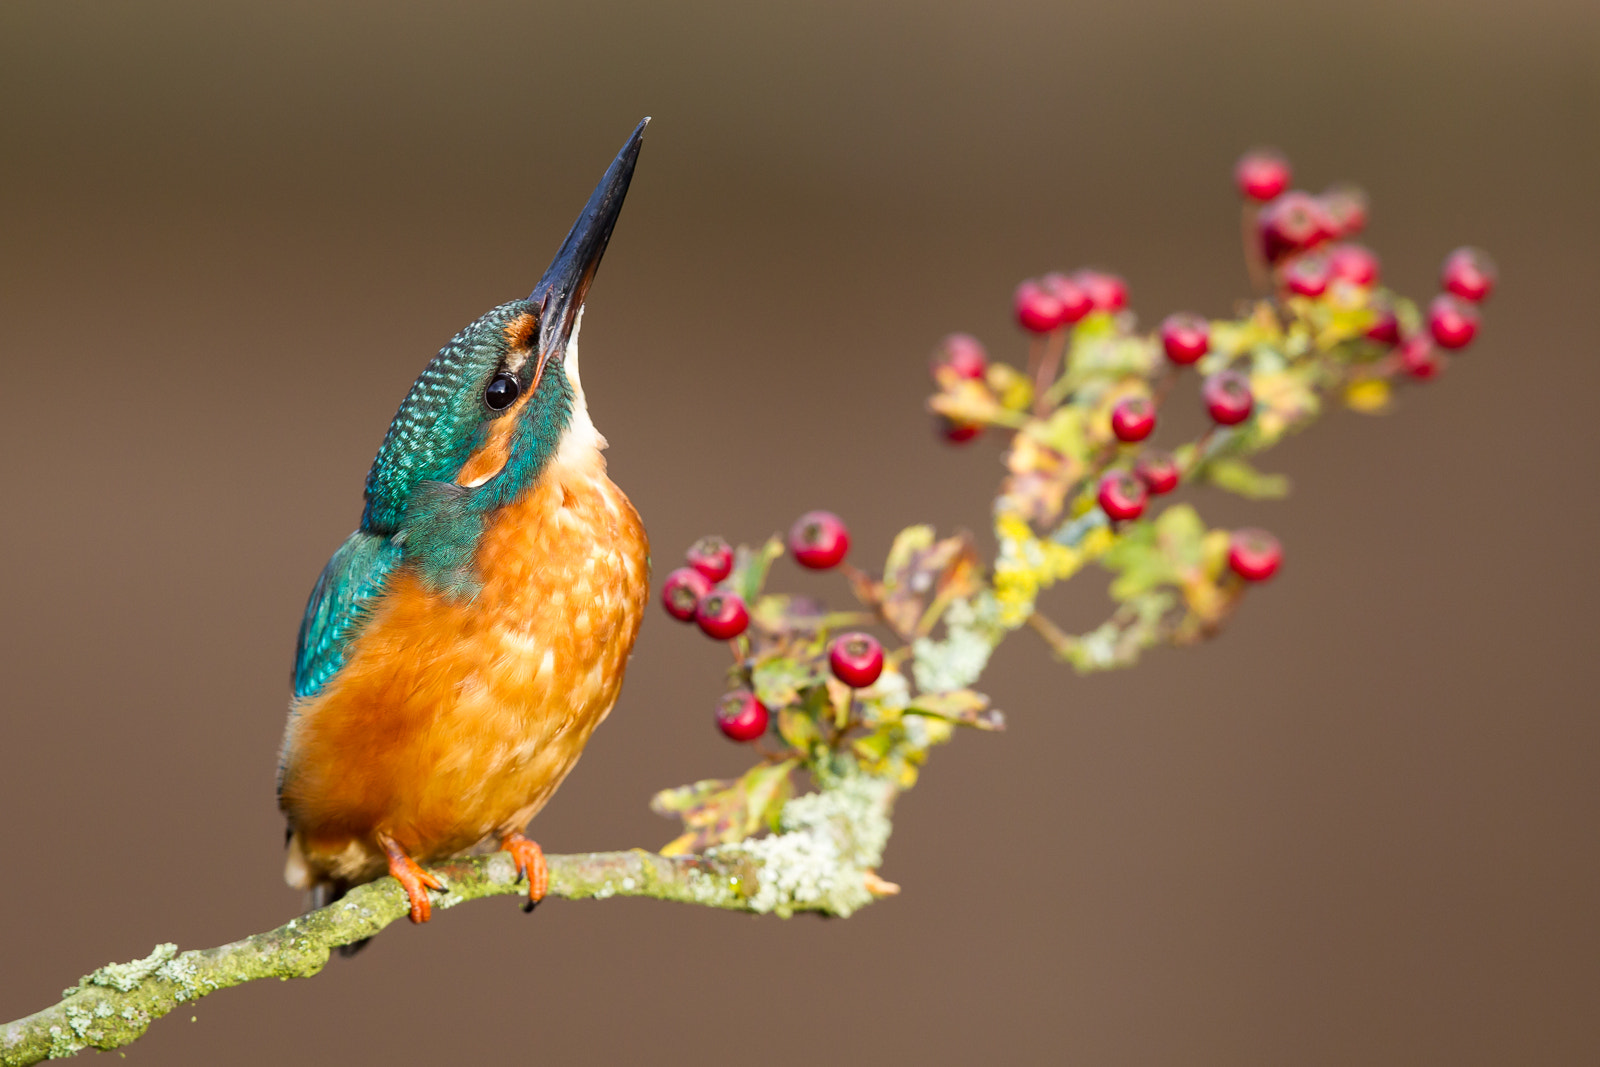 Photograph Kingfisher by Keith Humphrey on 500px